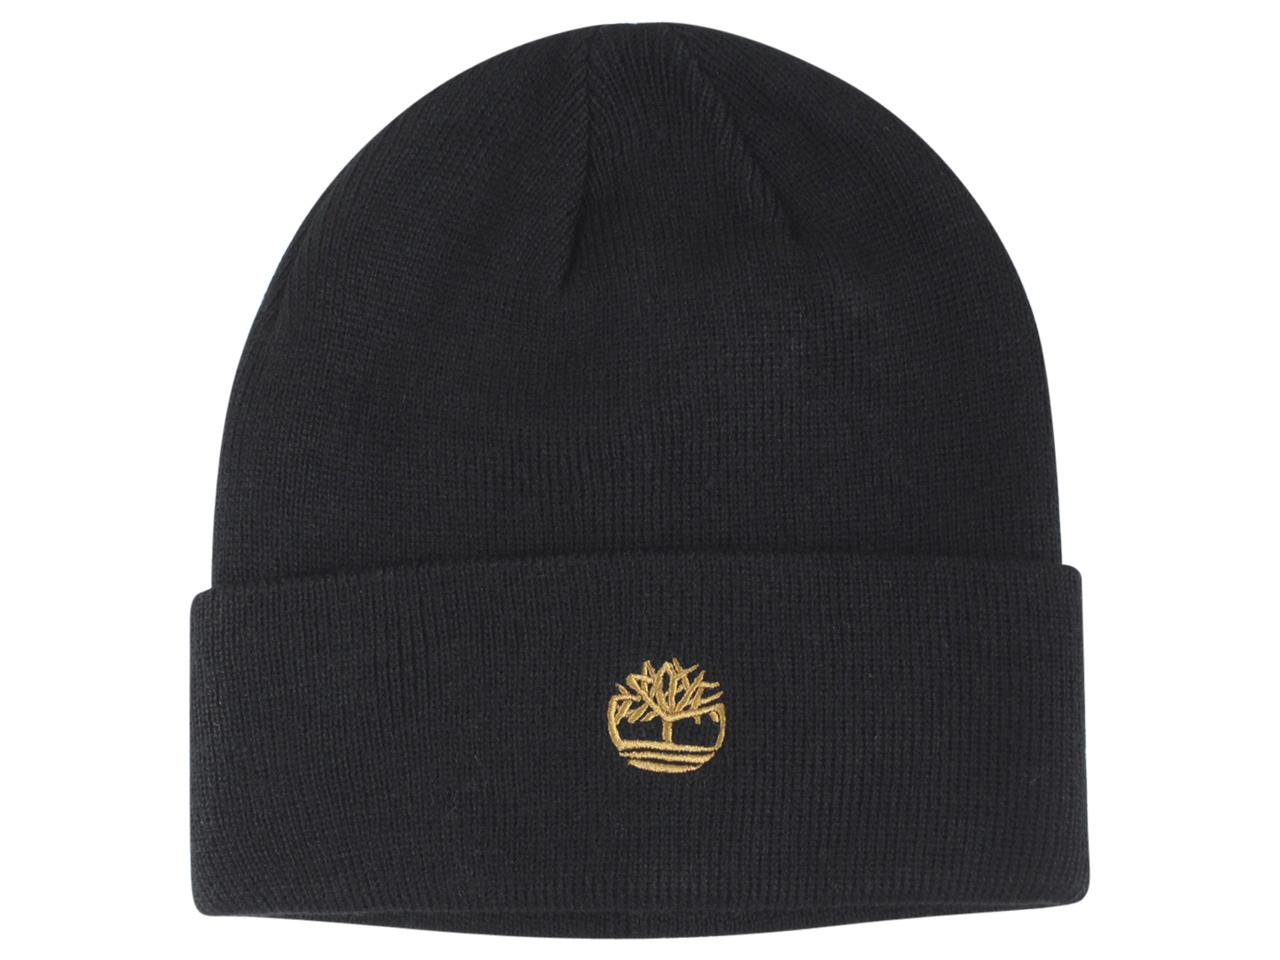 Image of - Black/Wheat - One Size Fits Most